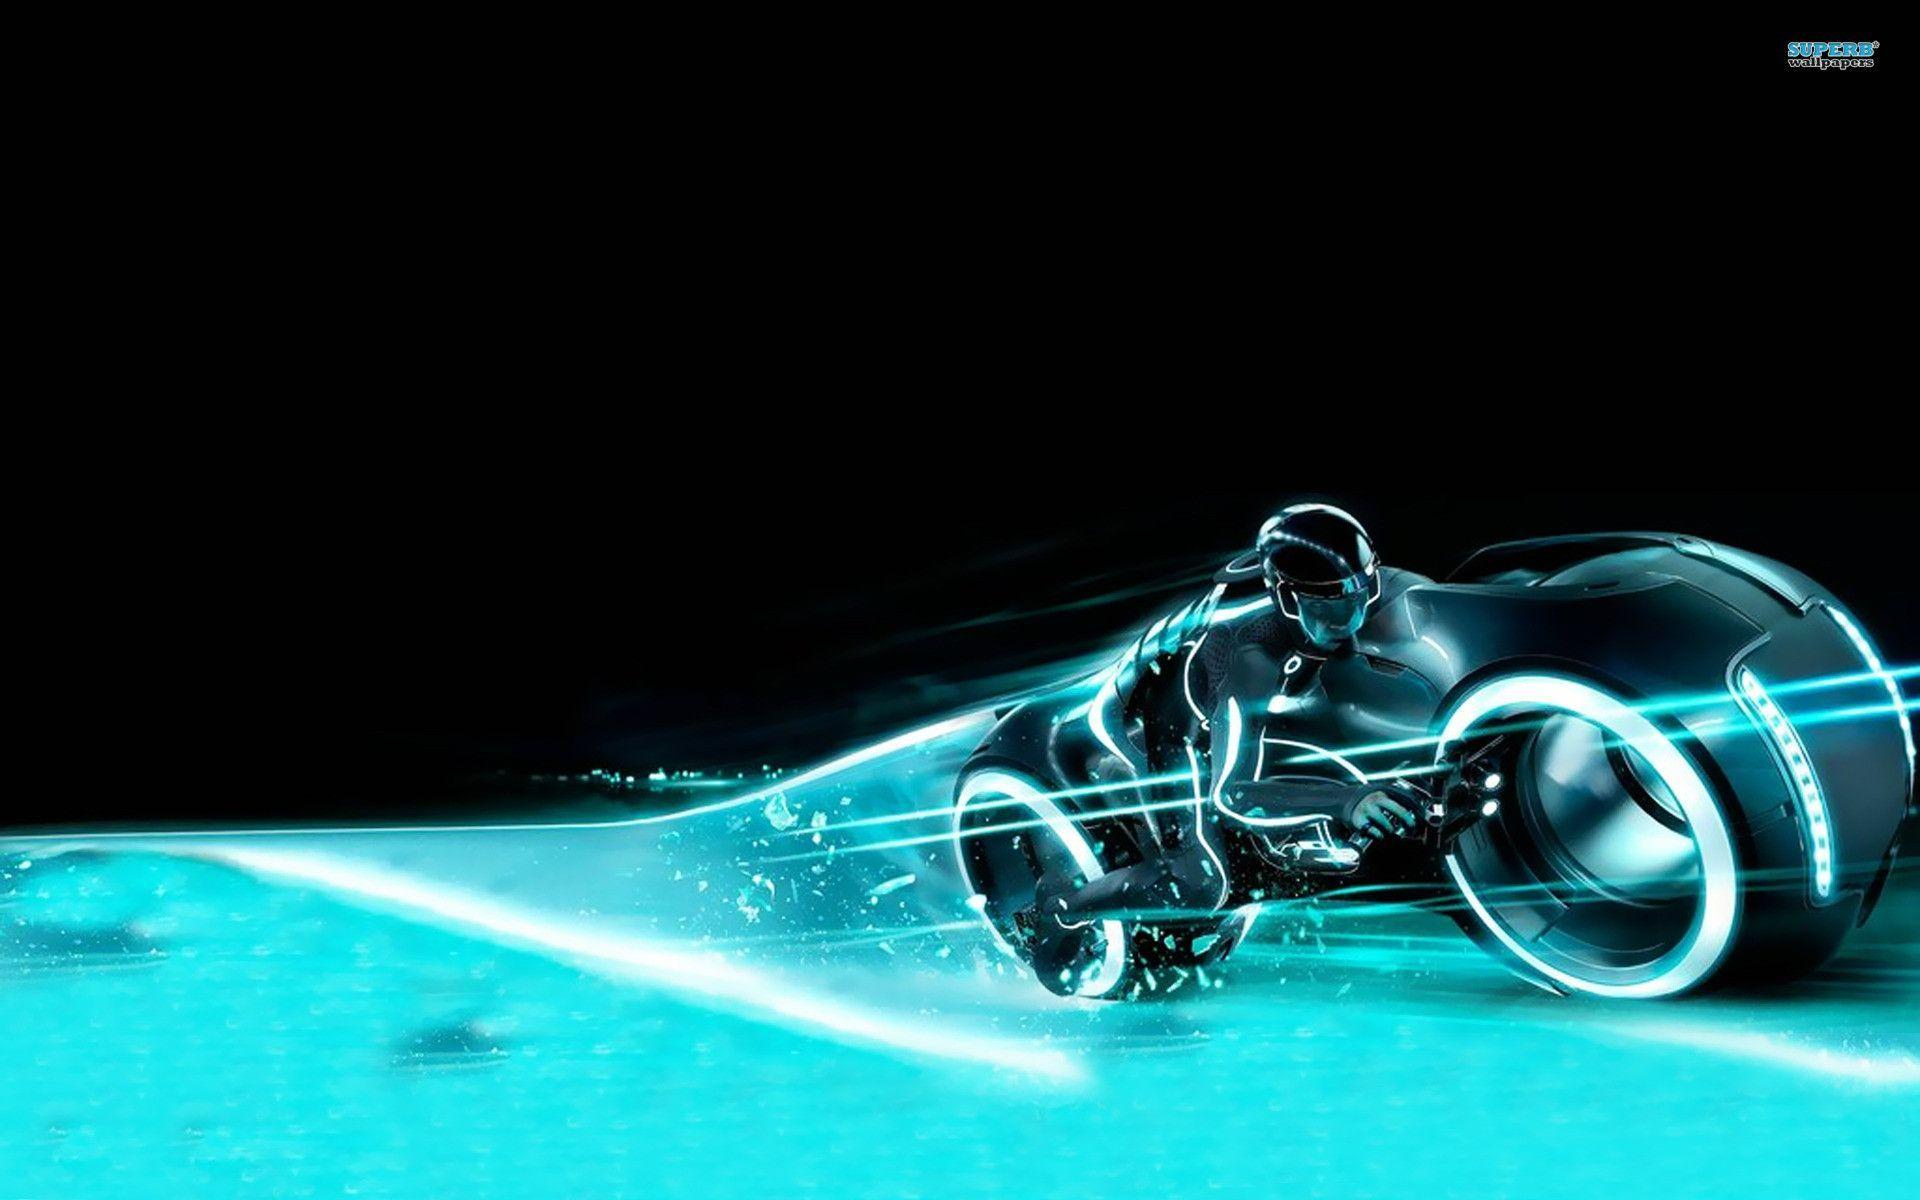 tron wallpaper hd style - photo #32